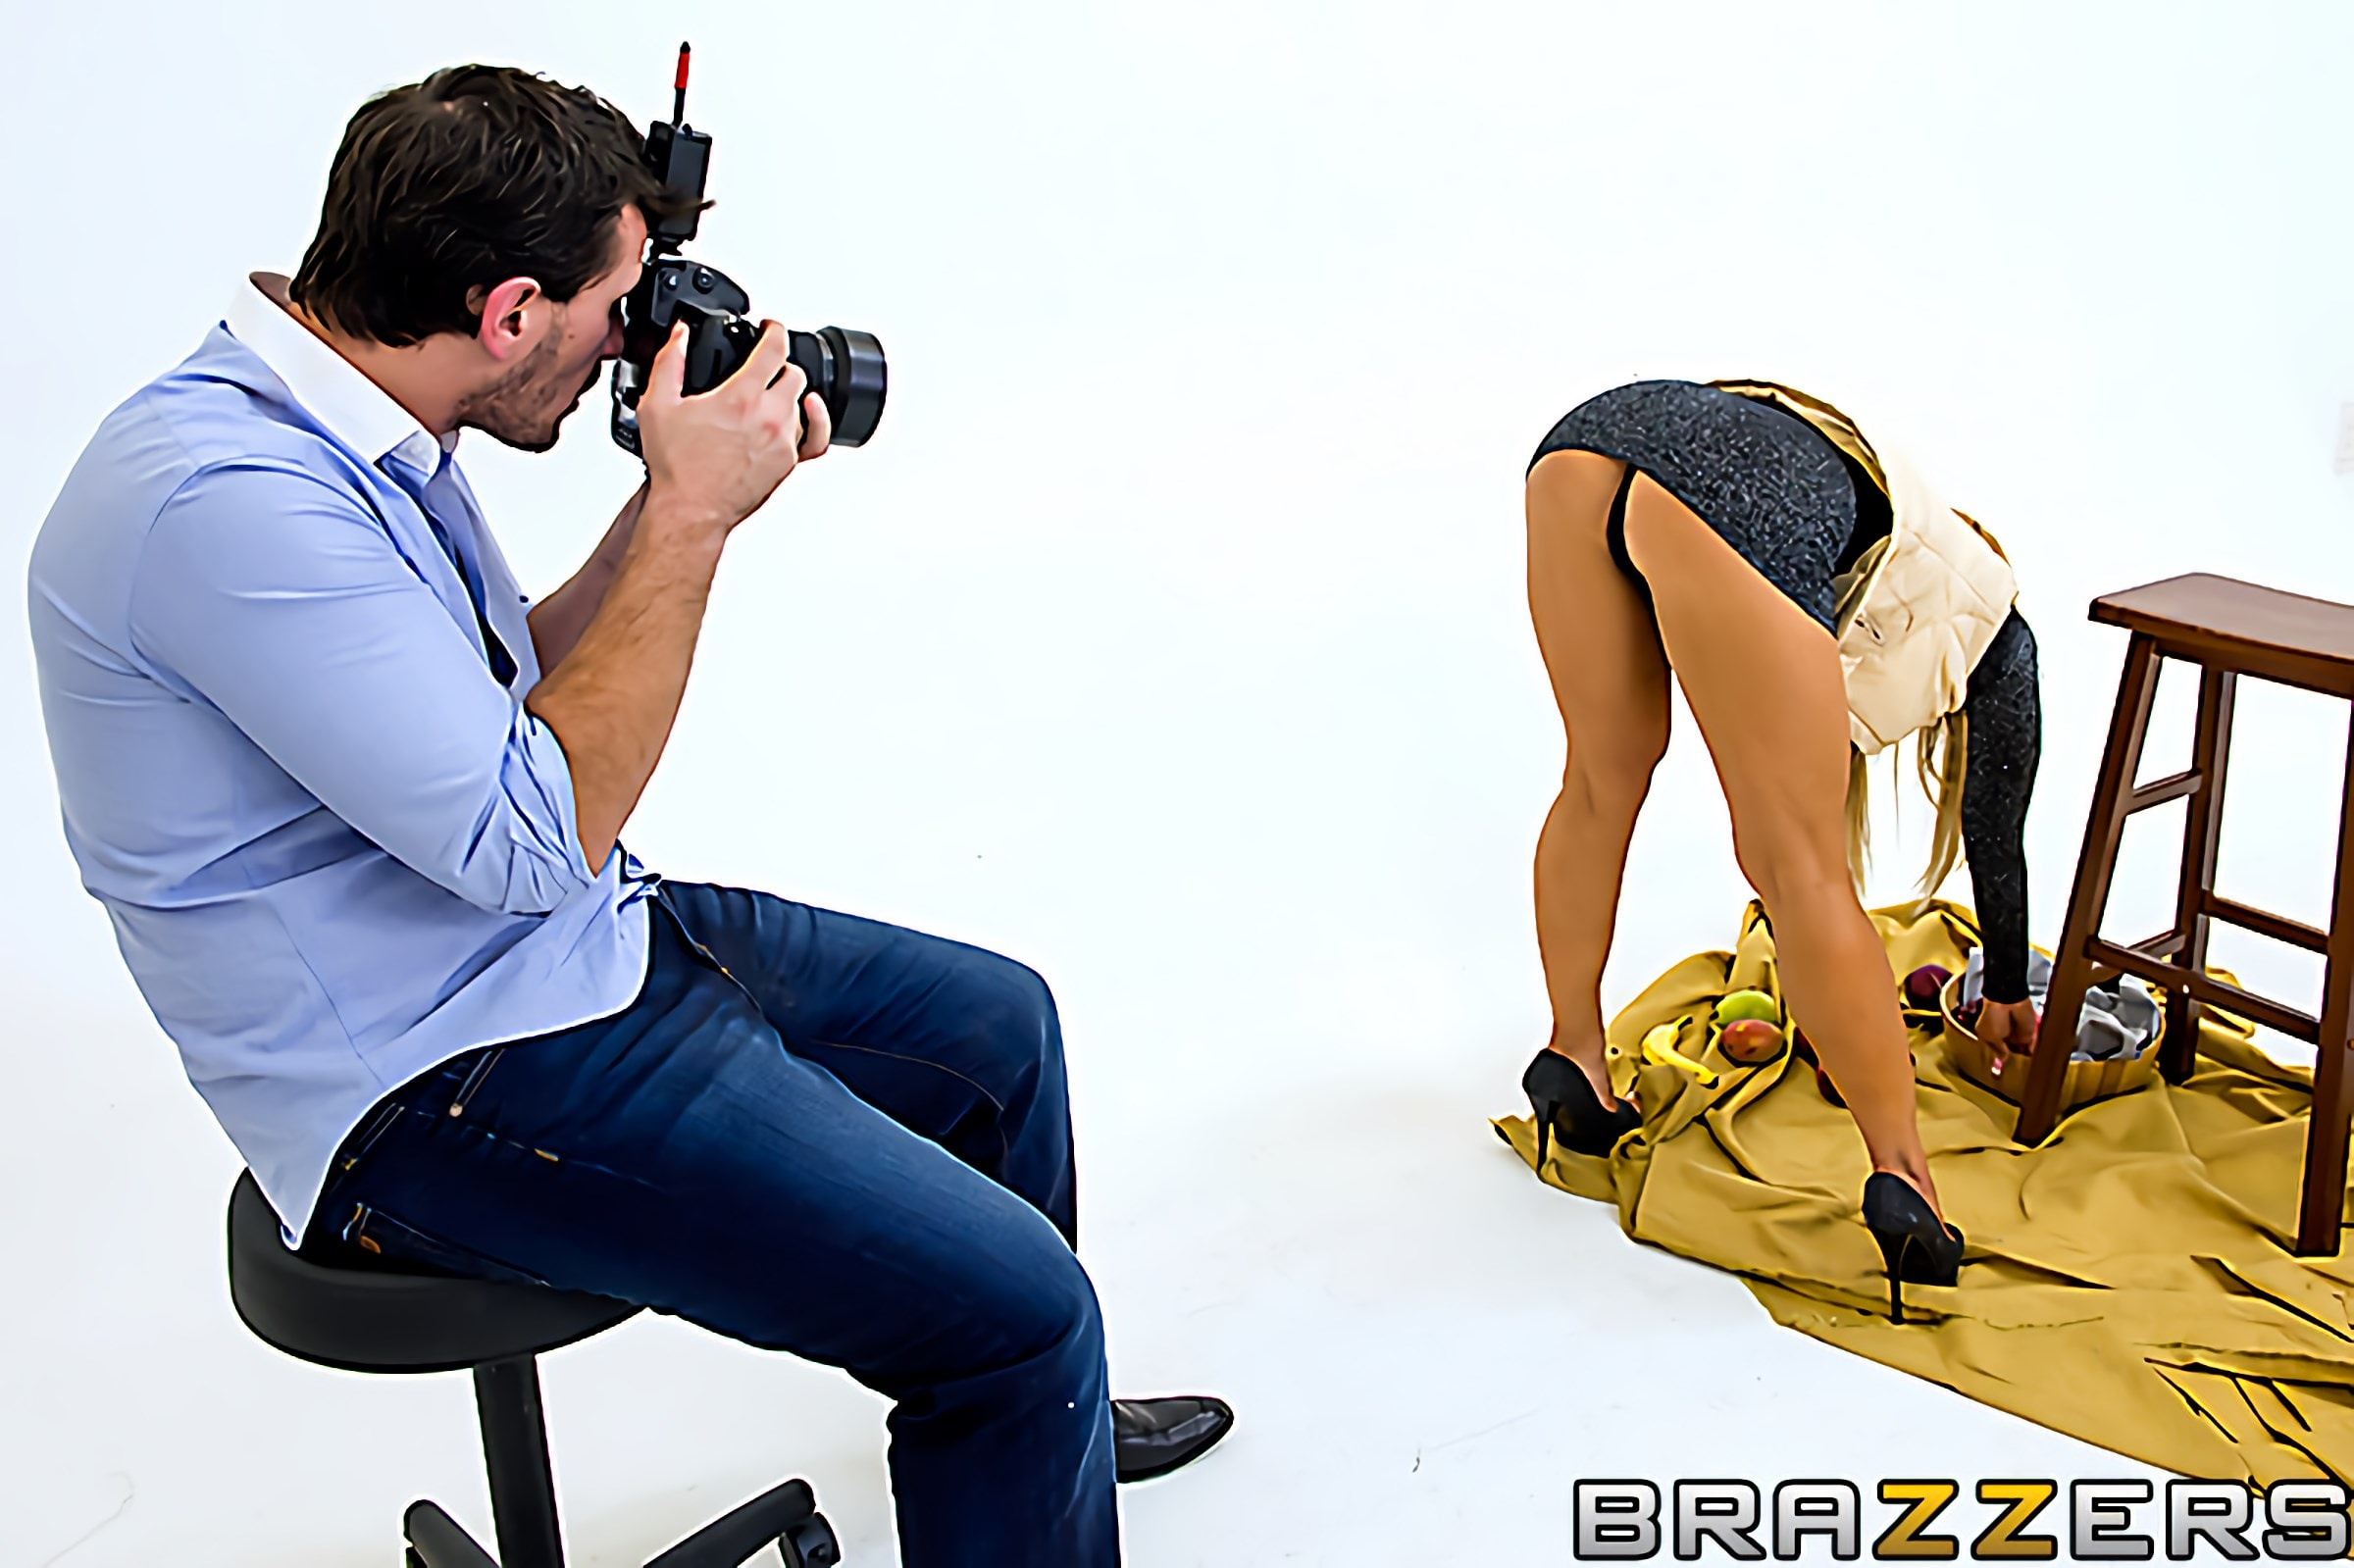 Brazzers 'Centerfold Me Over' starring Amber Lynn (Photo 1)